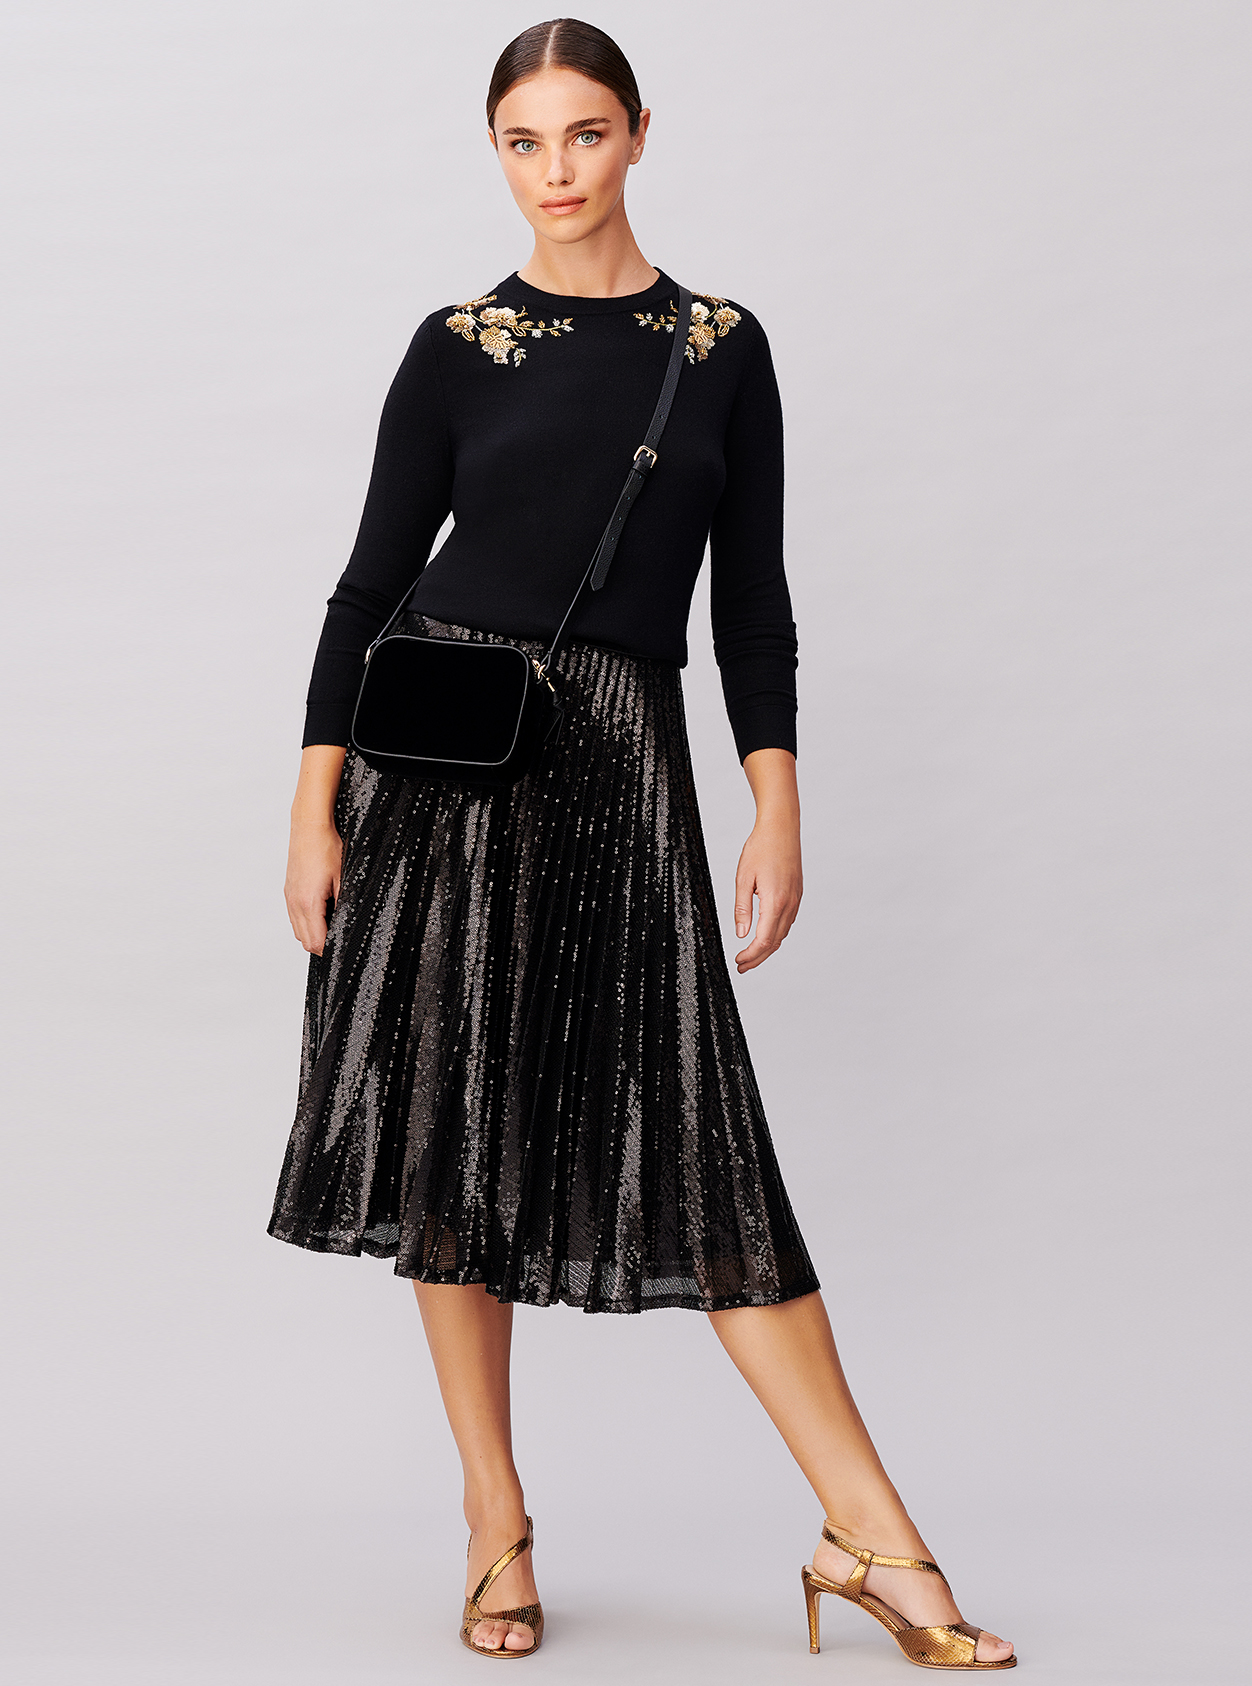 Sequin midi skirt worn with an embellished jumper, velvet crossbody bag and metallic heeled sandals from Hobbs.